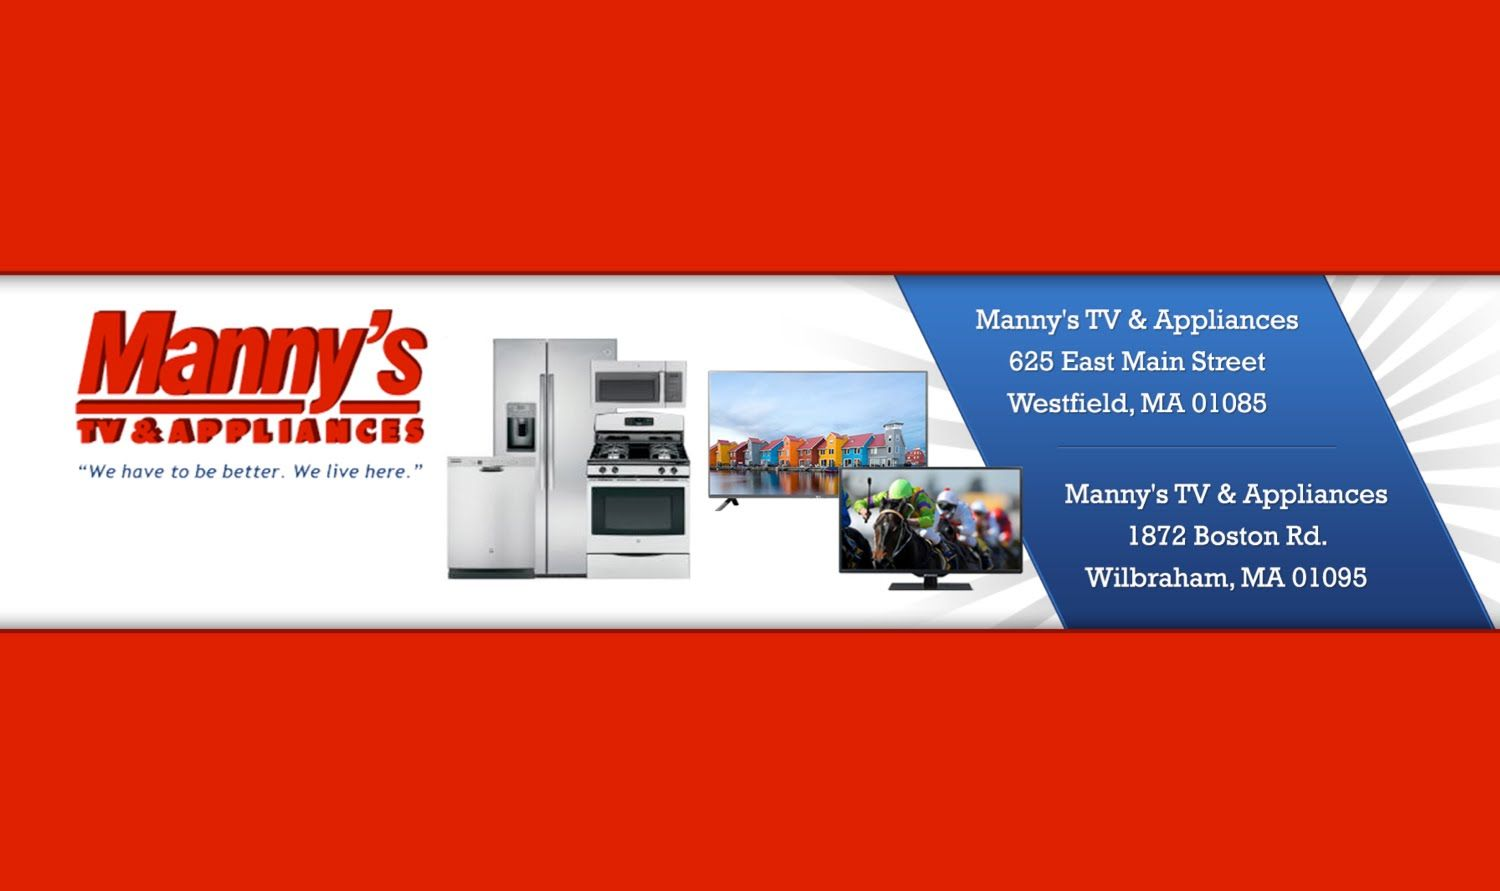 TV and Appliance Store Western Massachusetts http://bit.ly/TV-Appliance-Store-Western-Mass Your trusted TV and Appliance Store serving all of Western Massach...